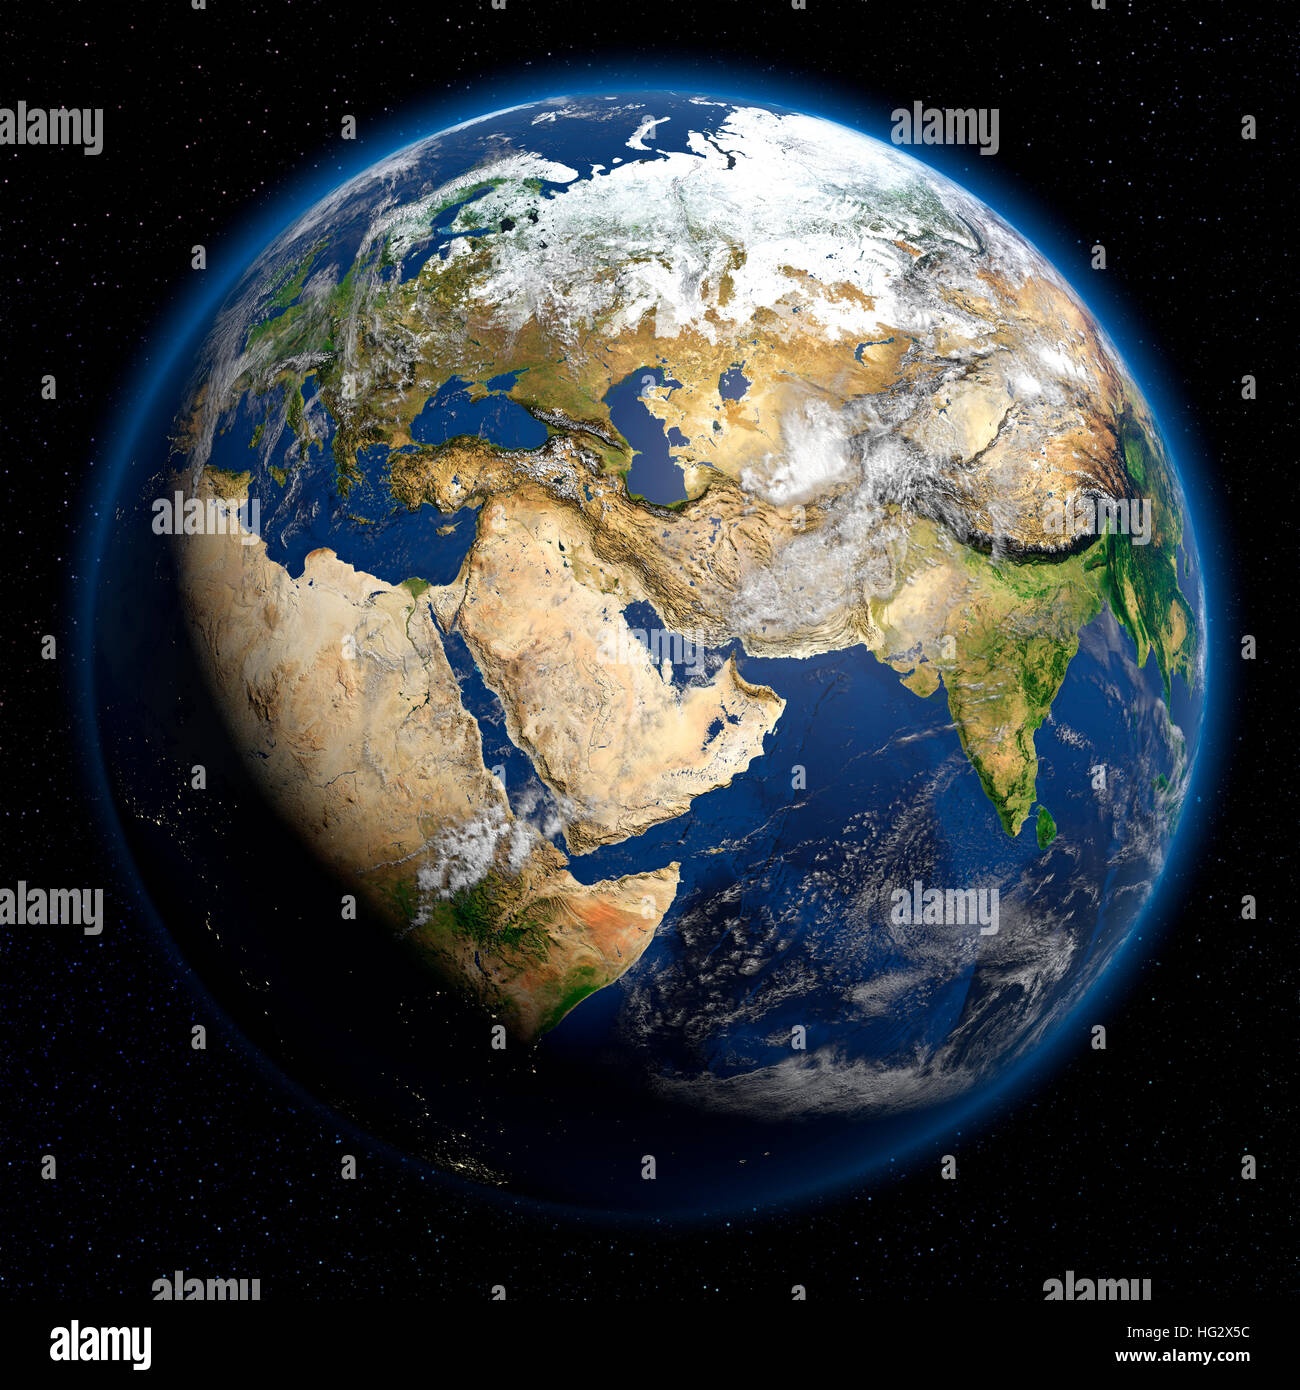 Earth viewed from space showing Middle East. Realistic digital illustration including relief map hill shading of - Stock Image